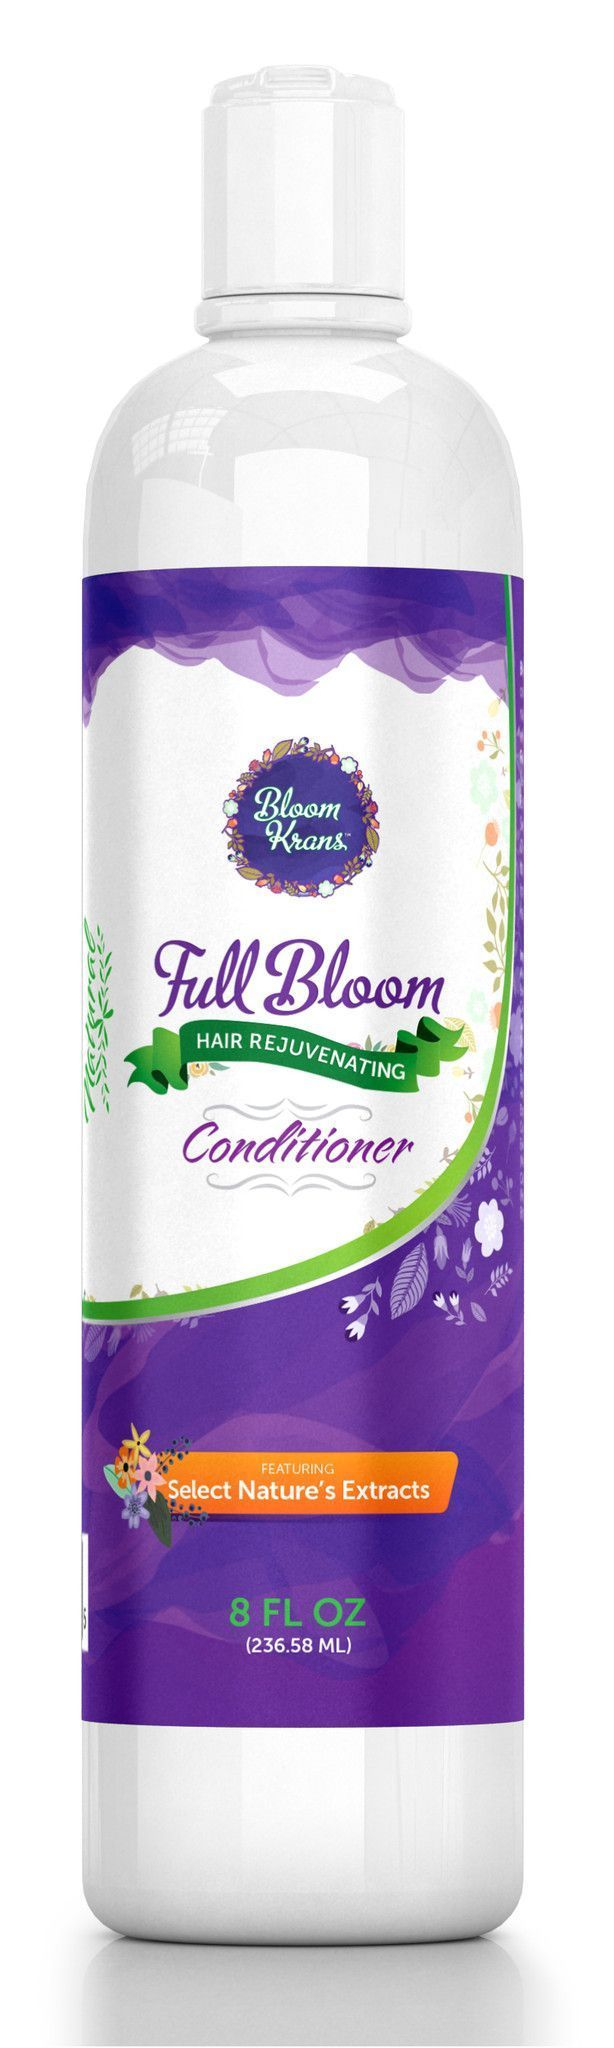 Bloom Krans Full Bloom Hair Loss Conditioner - Hair Growth Conditioner Help- Natural Alopecia Treatment for Women SLS Free Conditioner - Coconut Oil for Hair Growth (Pairs w/ Hair Loss Shampoo & Hair Loss Vitamins)